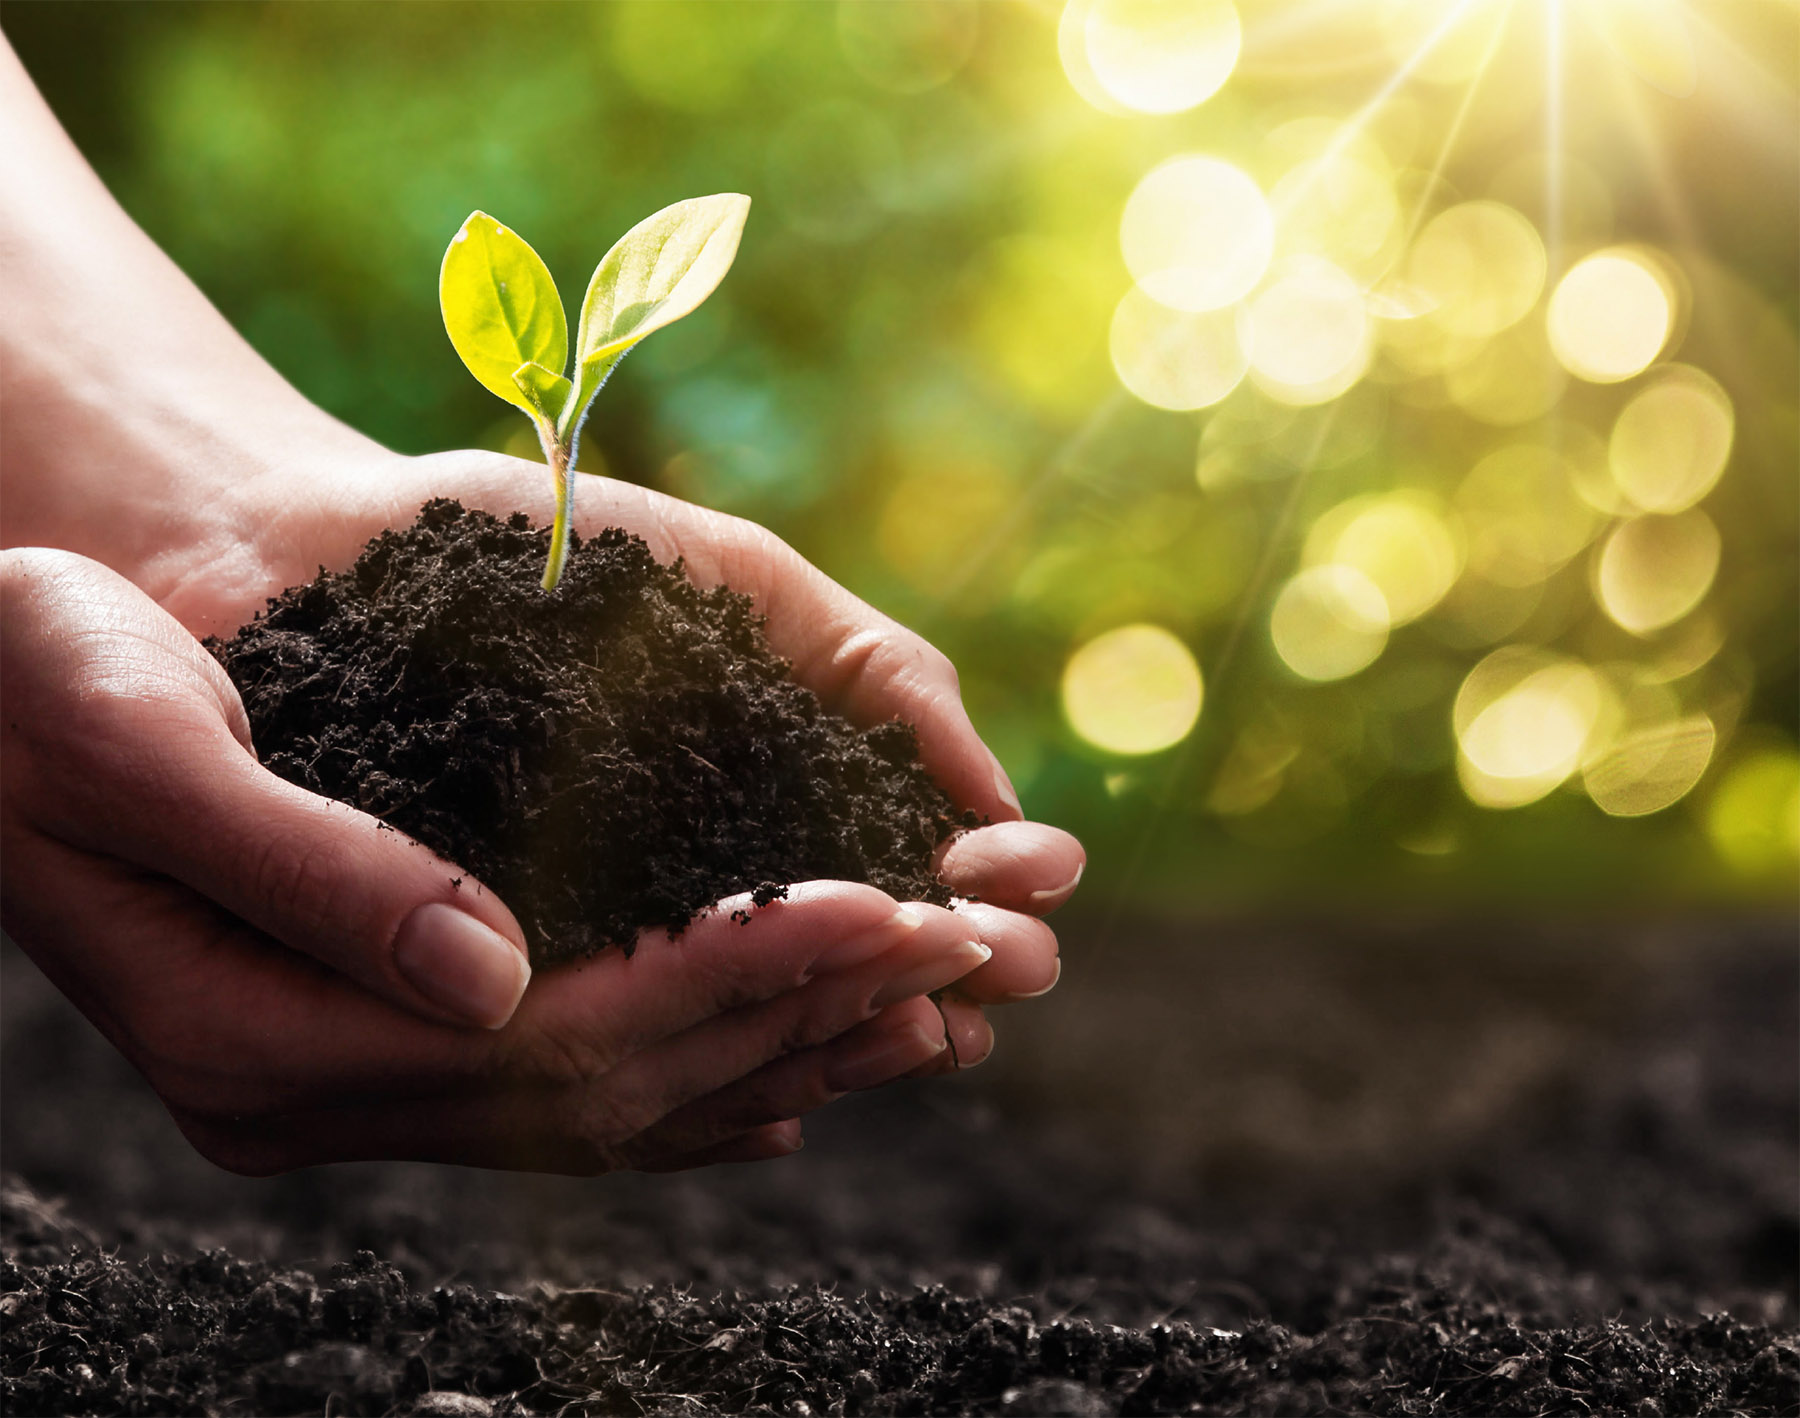 hands holding a seedling in earth